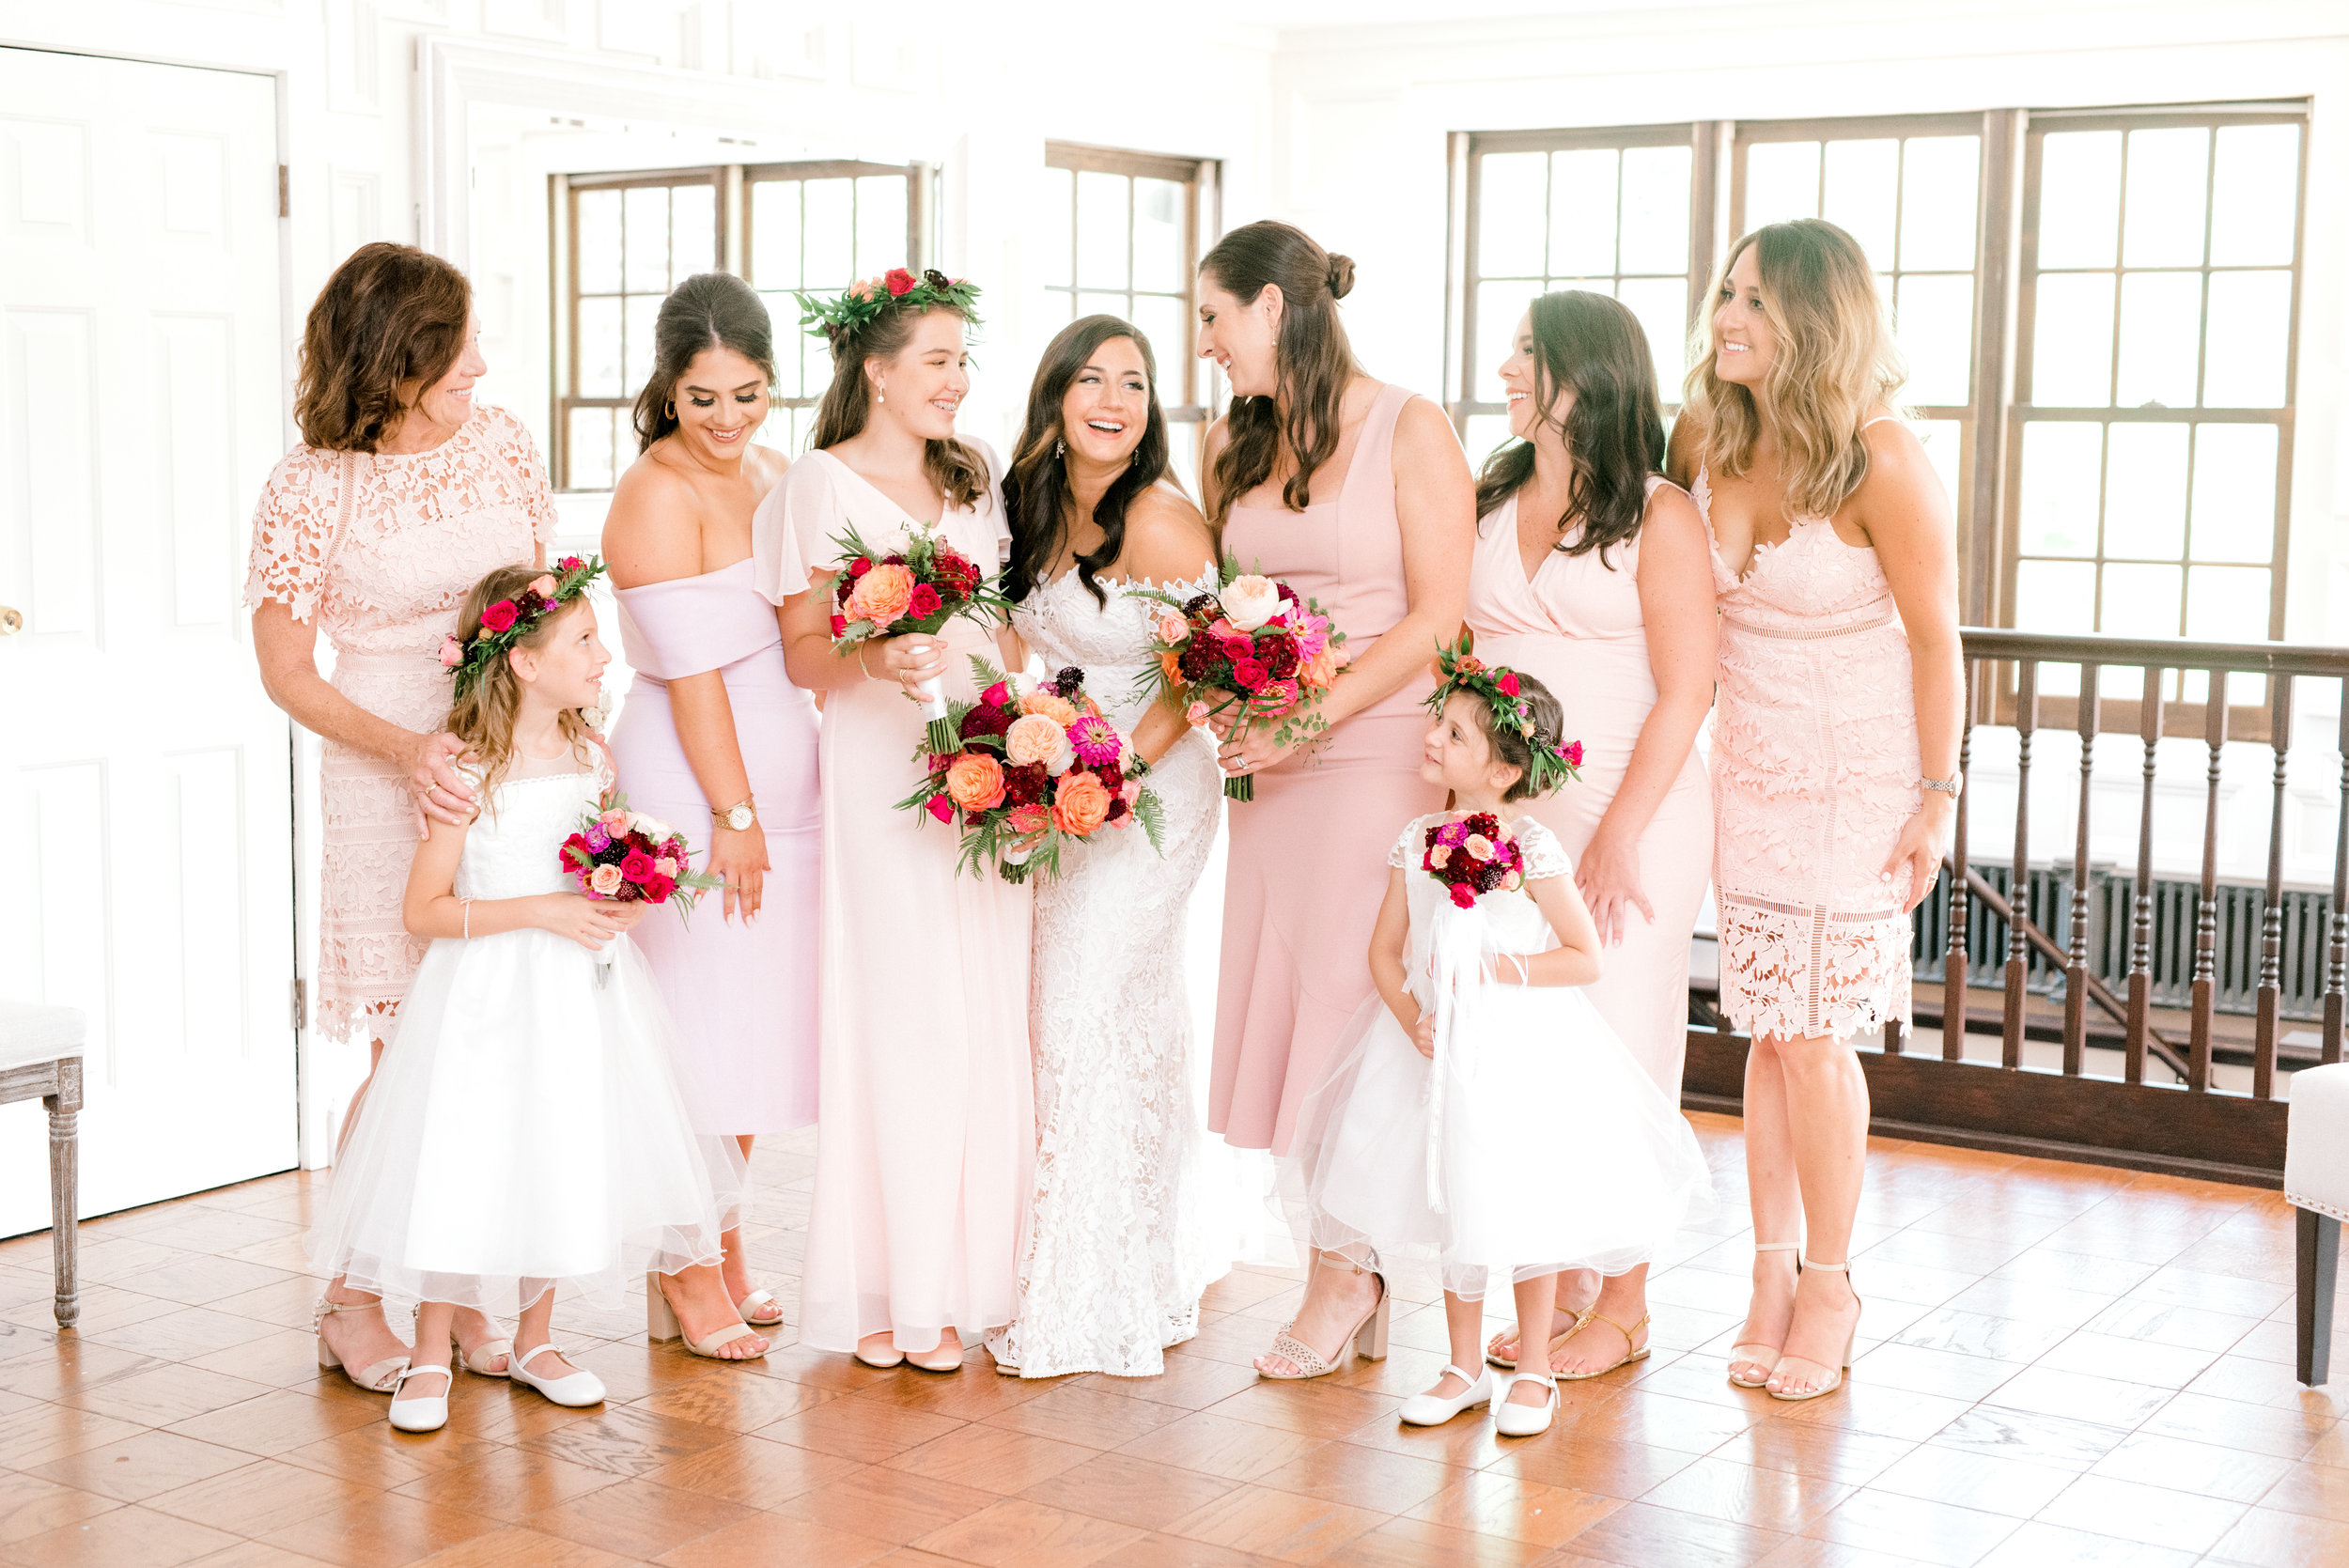 We loved the mix of pale pinks and whites with a pop of bright florals for this bridal party for a modern and colorful summer wedding at Hotel du Village.